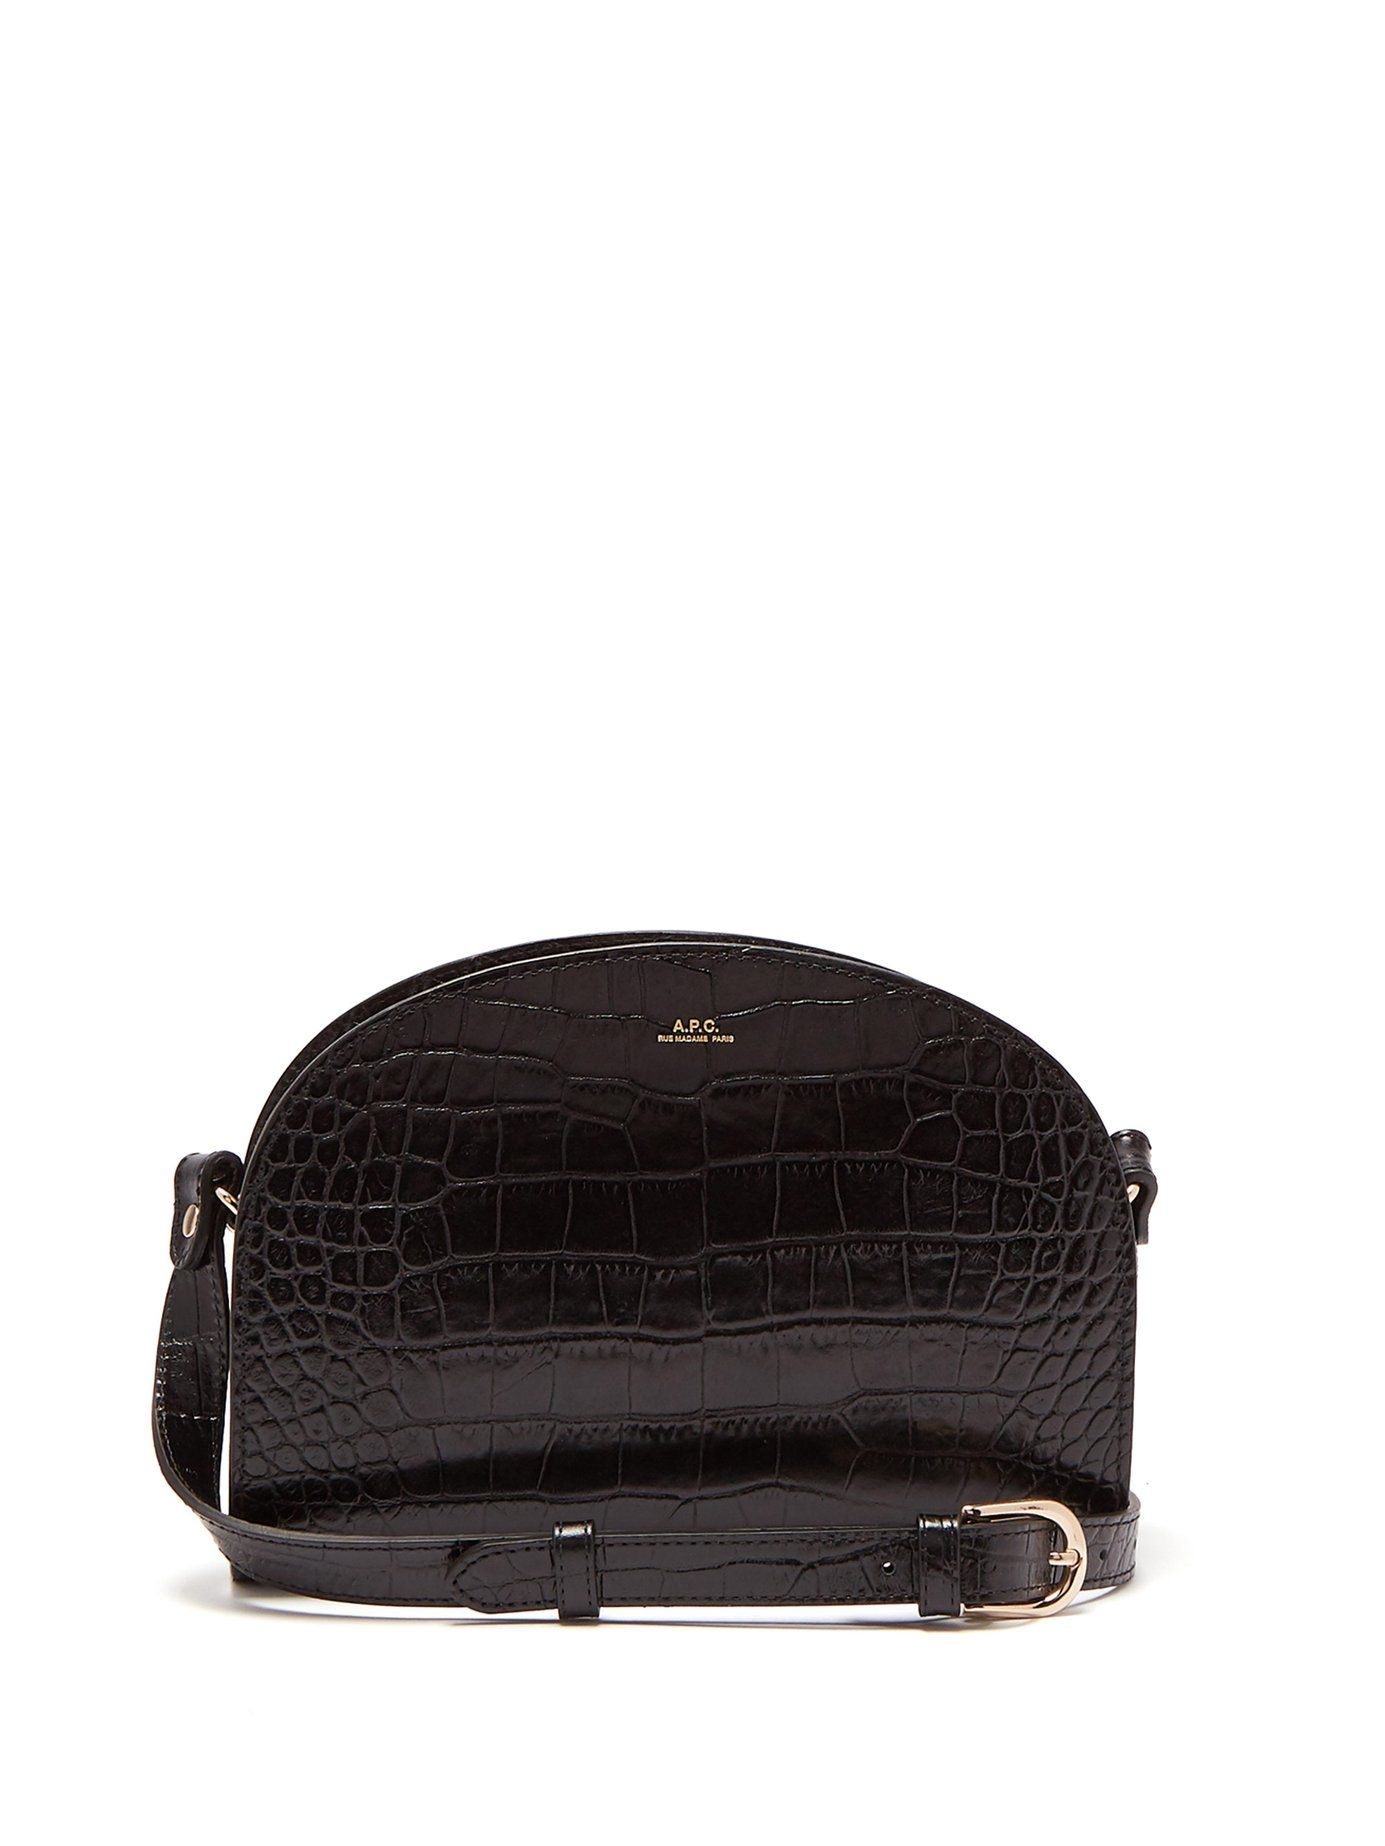 00ebc33a6845 Half-moon crocodile-effect leather cross-body bag | A.P.C. |  MATCHESFASHION.COM UK